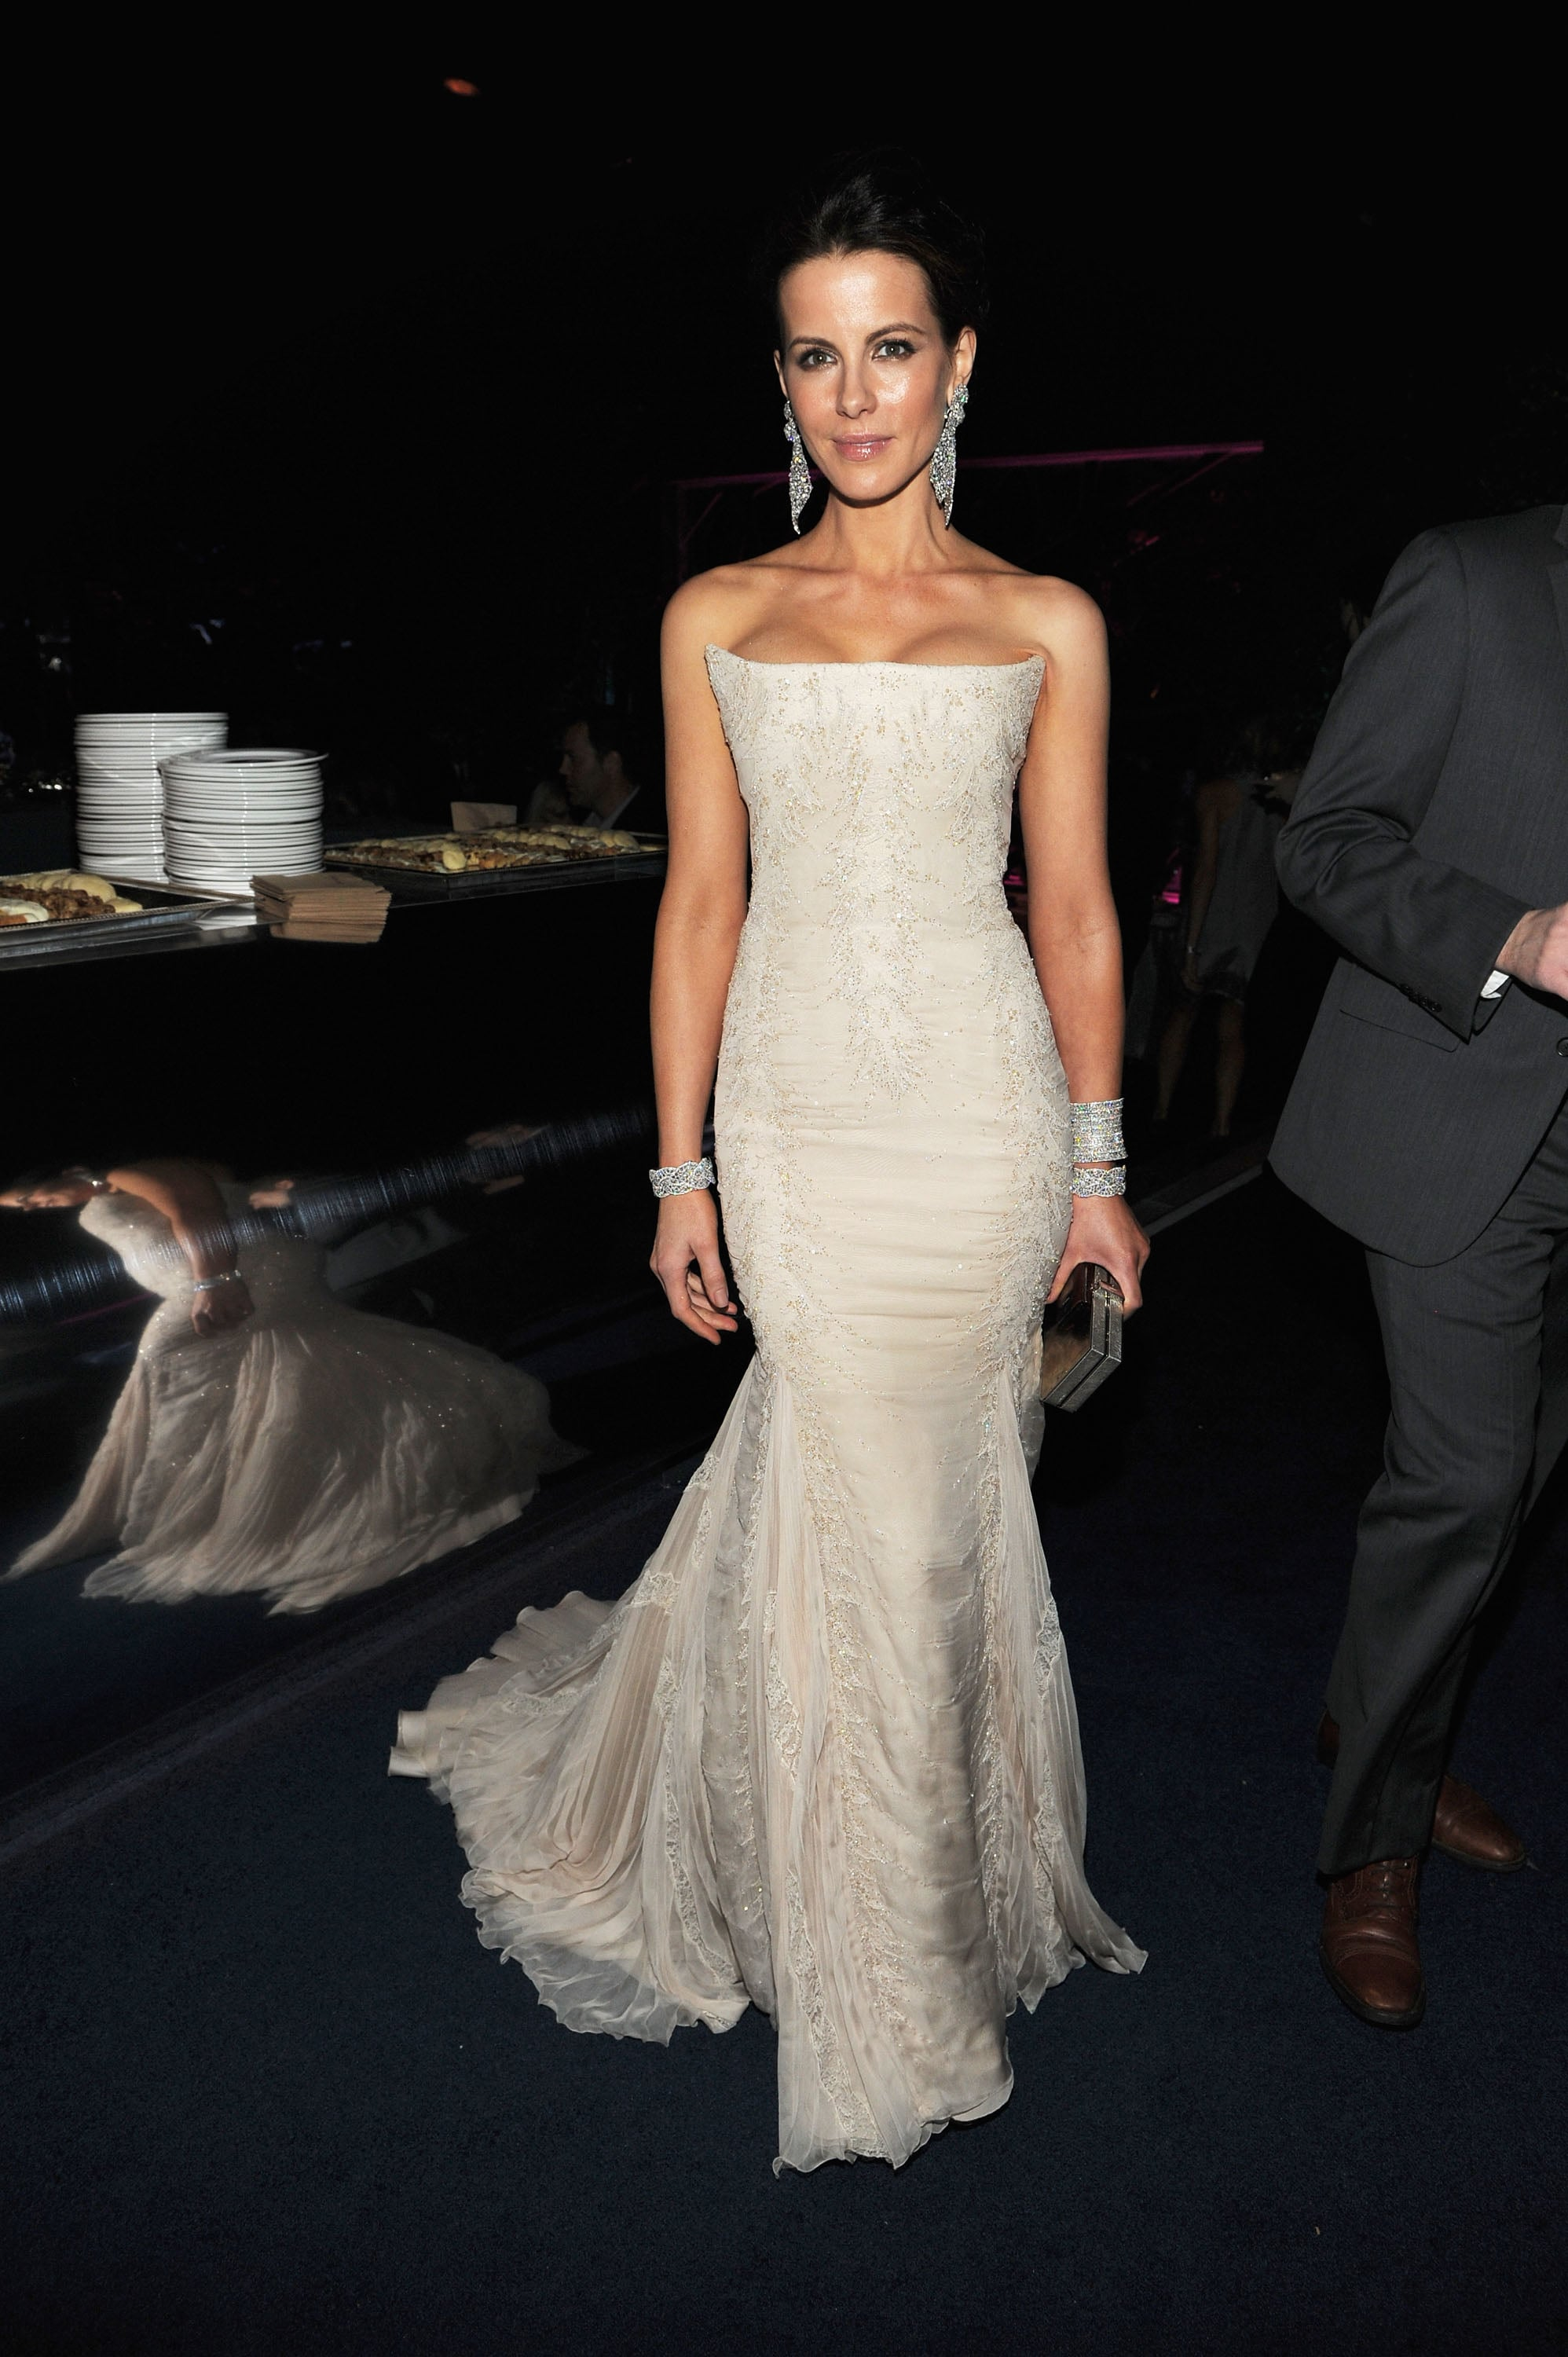 Kate Beckinsale showed off her figure at a Golden Globes party in January 2012.